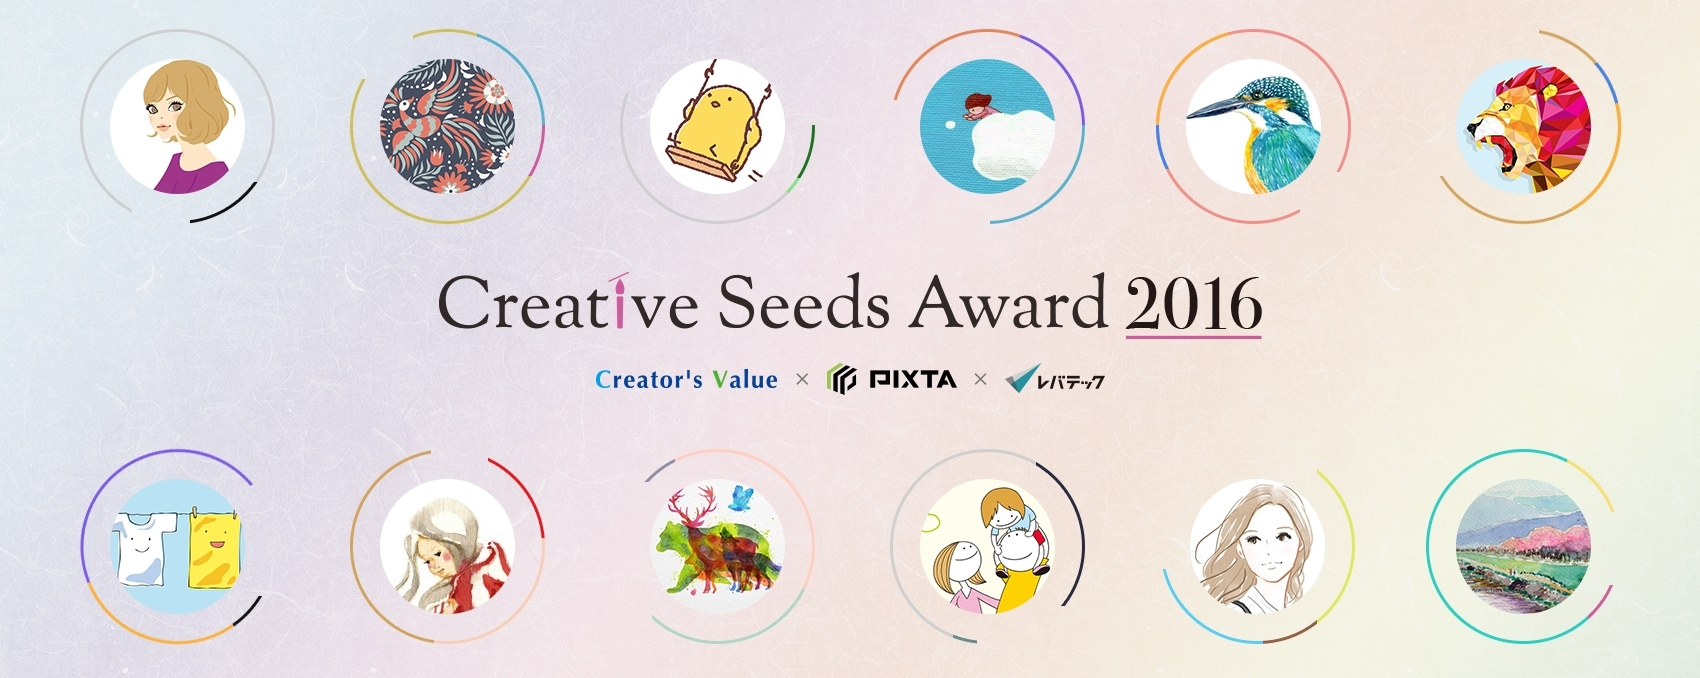 『Creative Seeds Award 2016』